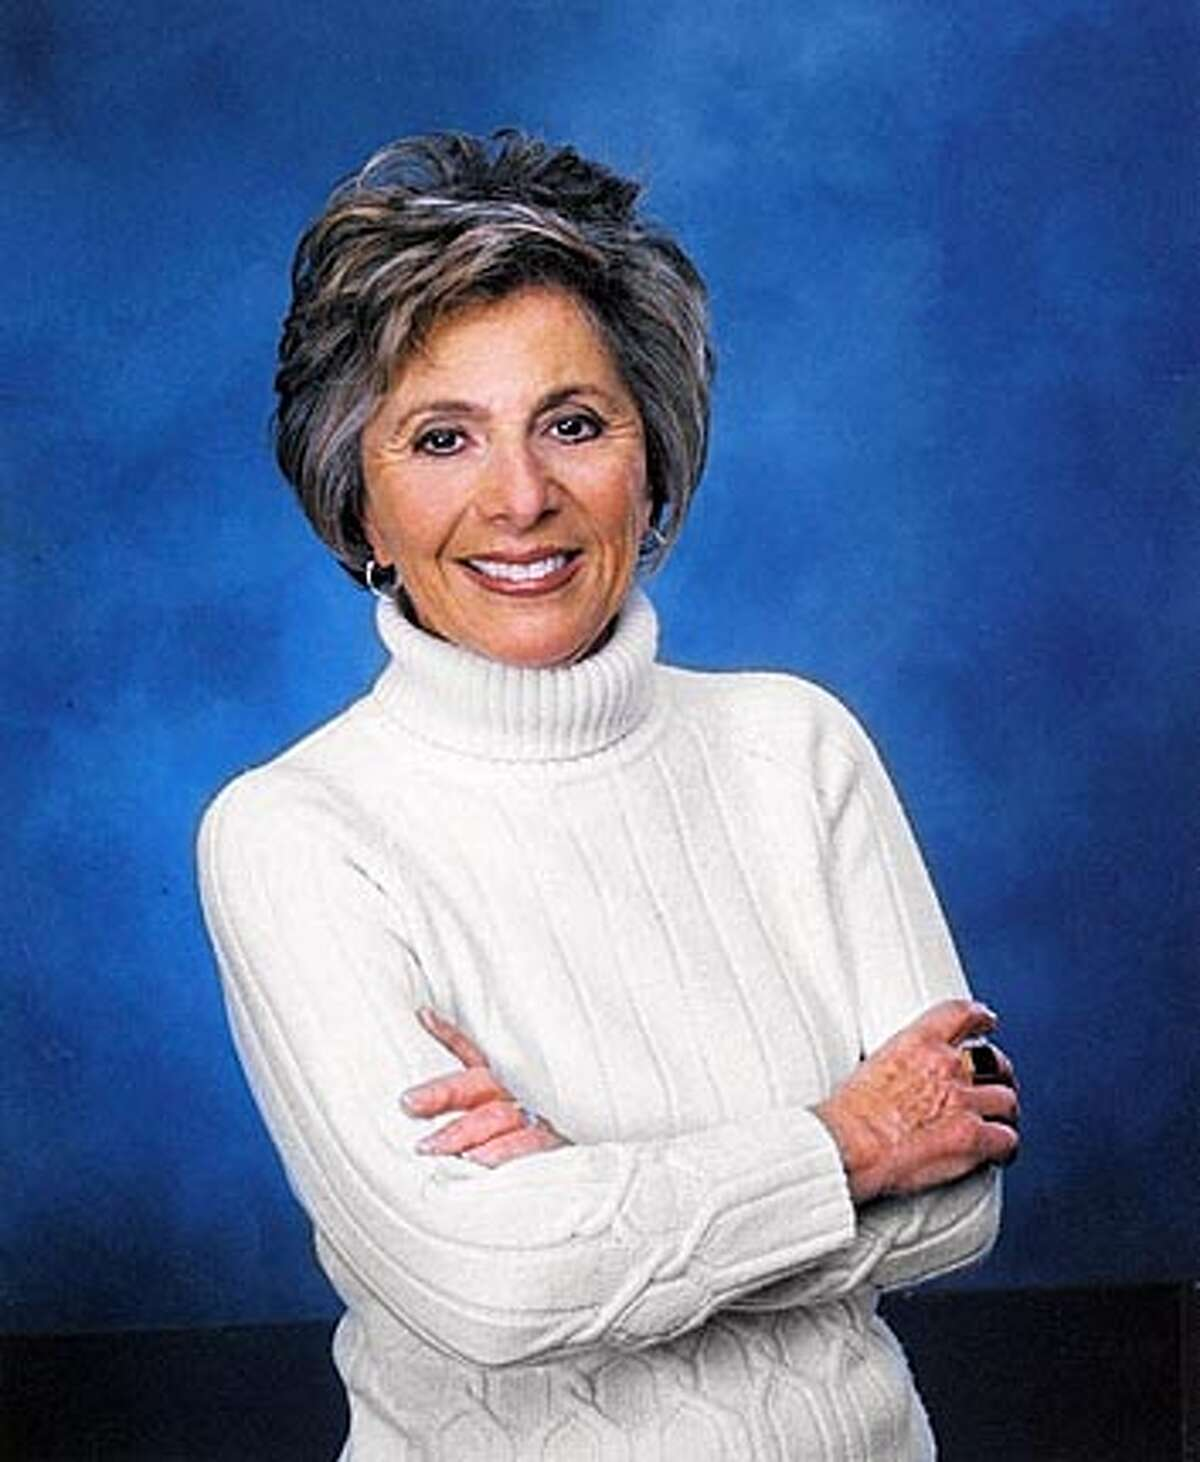 """Barbara Boxer, author of """"A Time to Run"""" HANDOUT / FOR USE WITH BOOK REVIEW ONLY"""